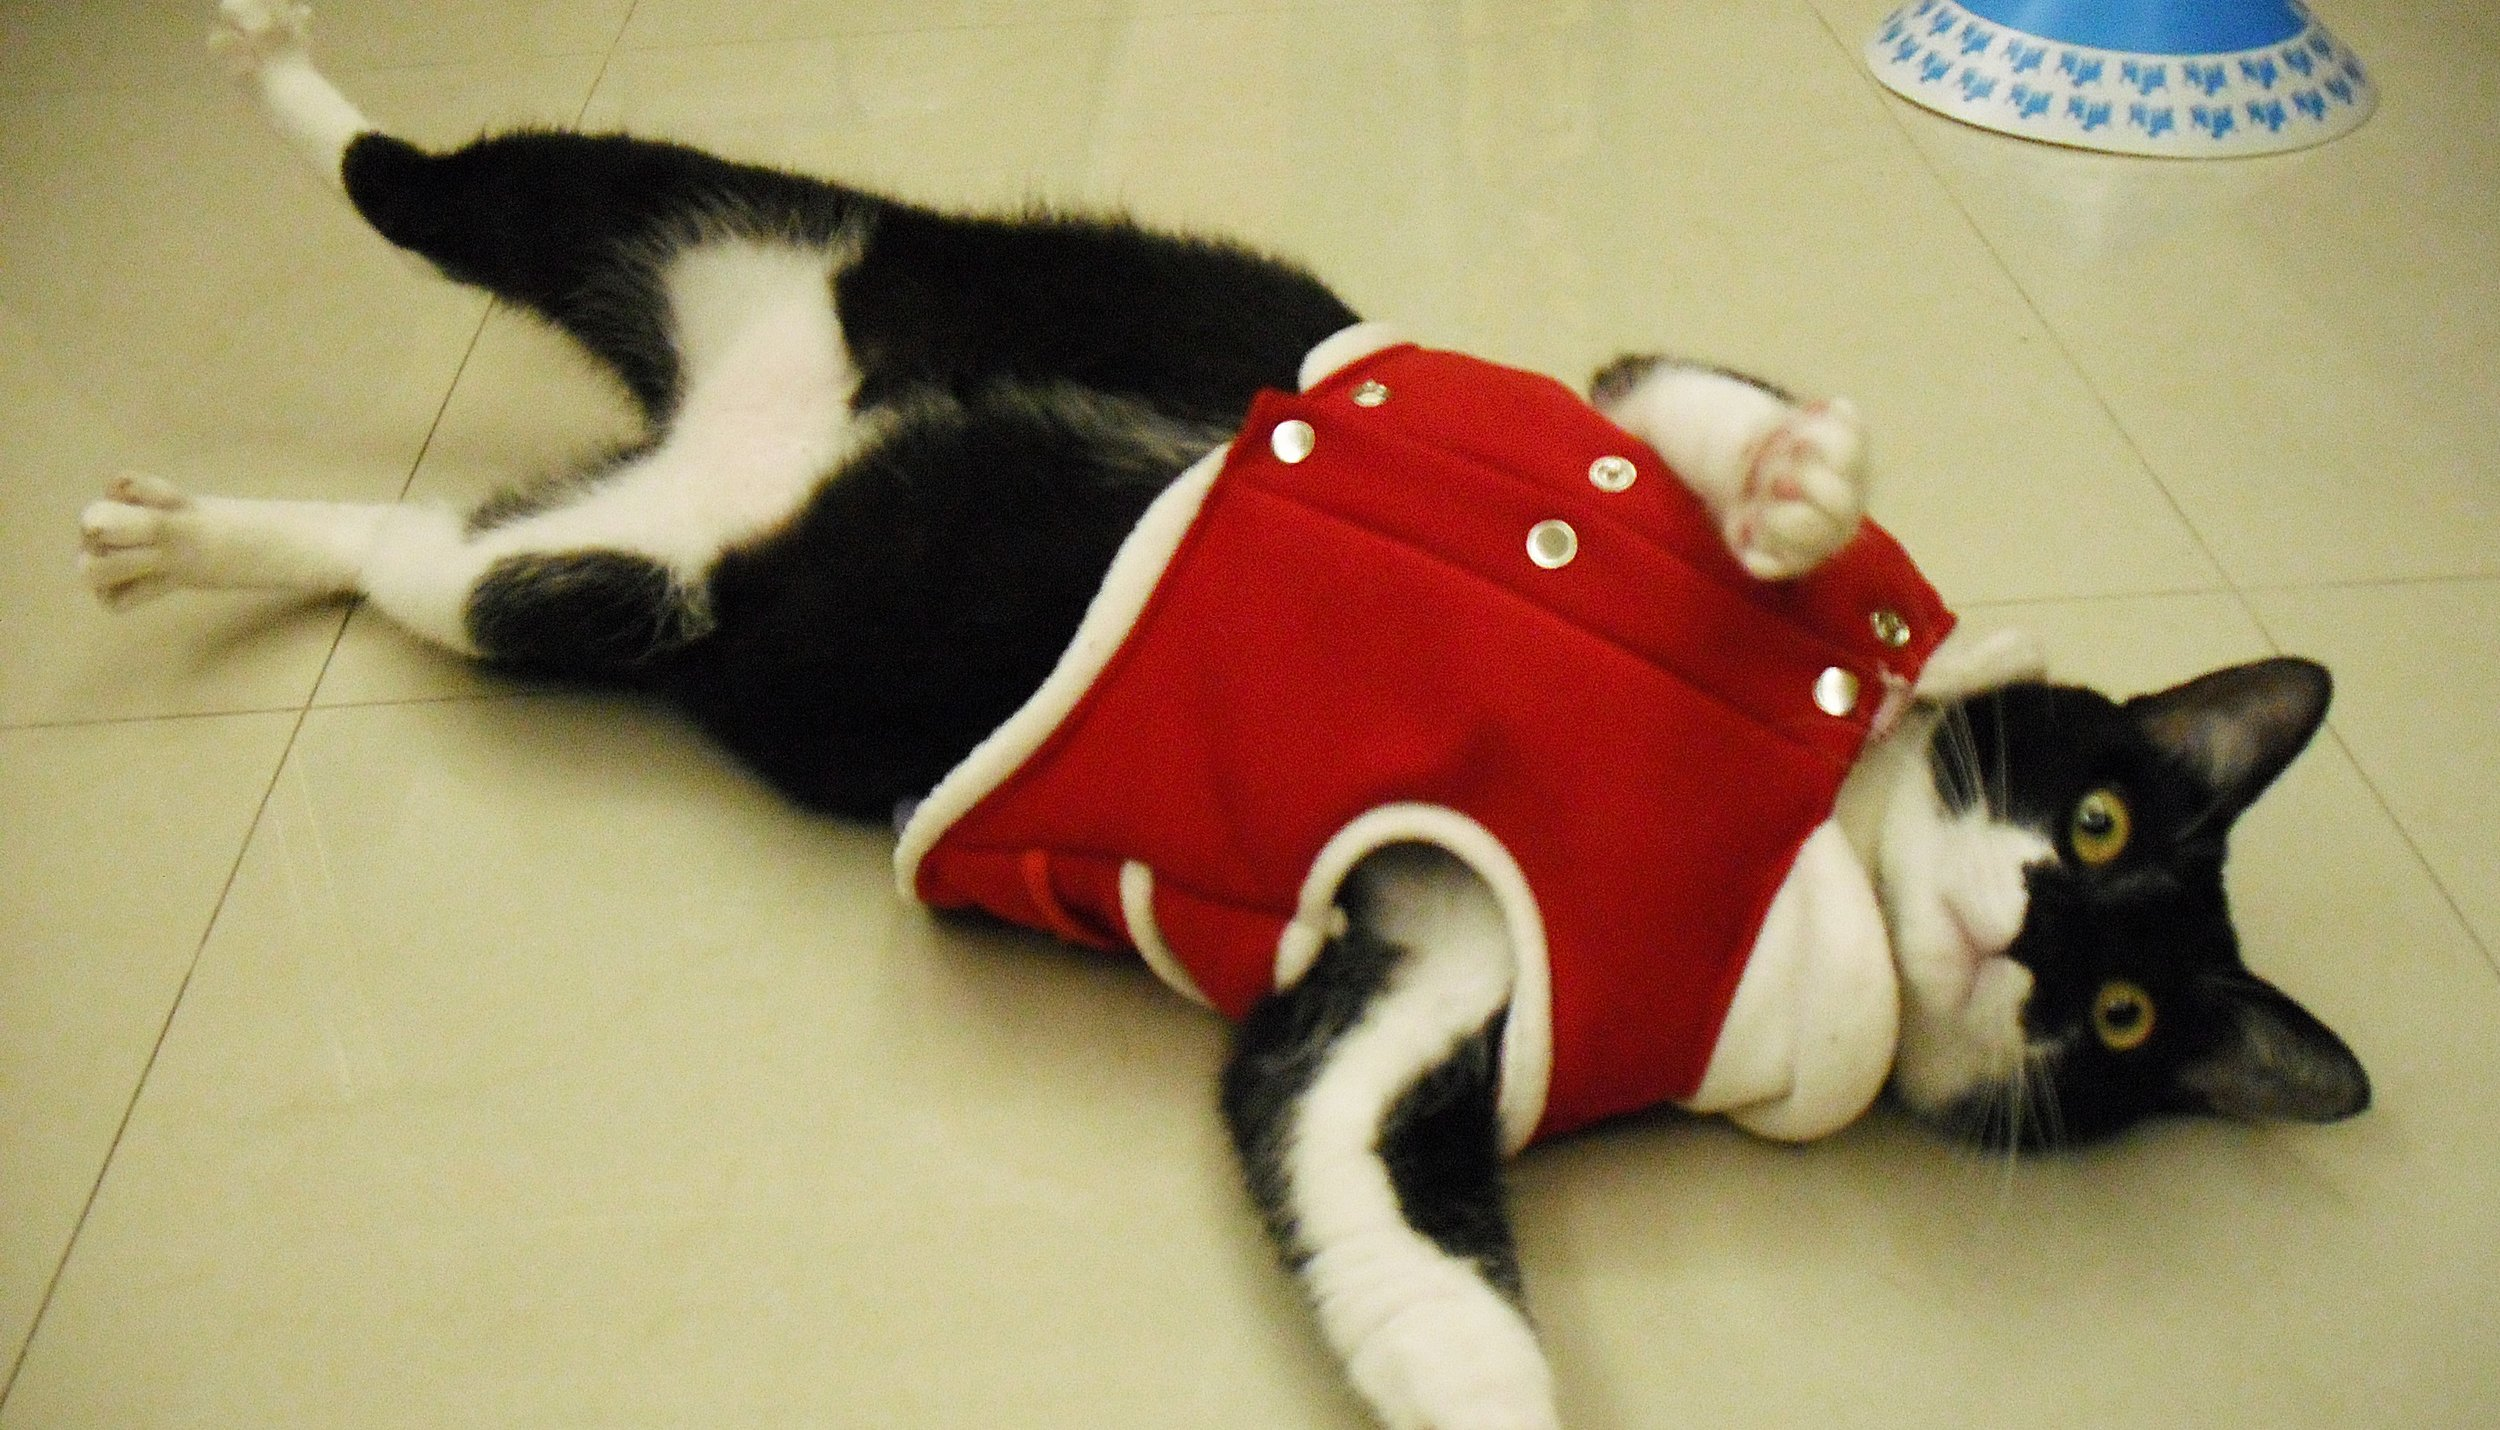 Ok I don't have many actual Houtong cat photos so this is Xiaomao, a cat I used to live with, in his Christmas outfit.